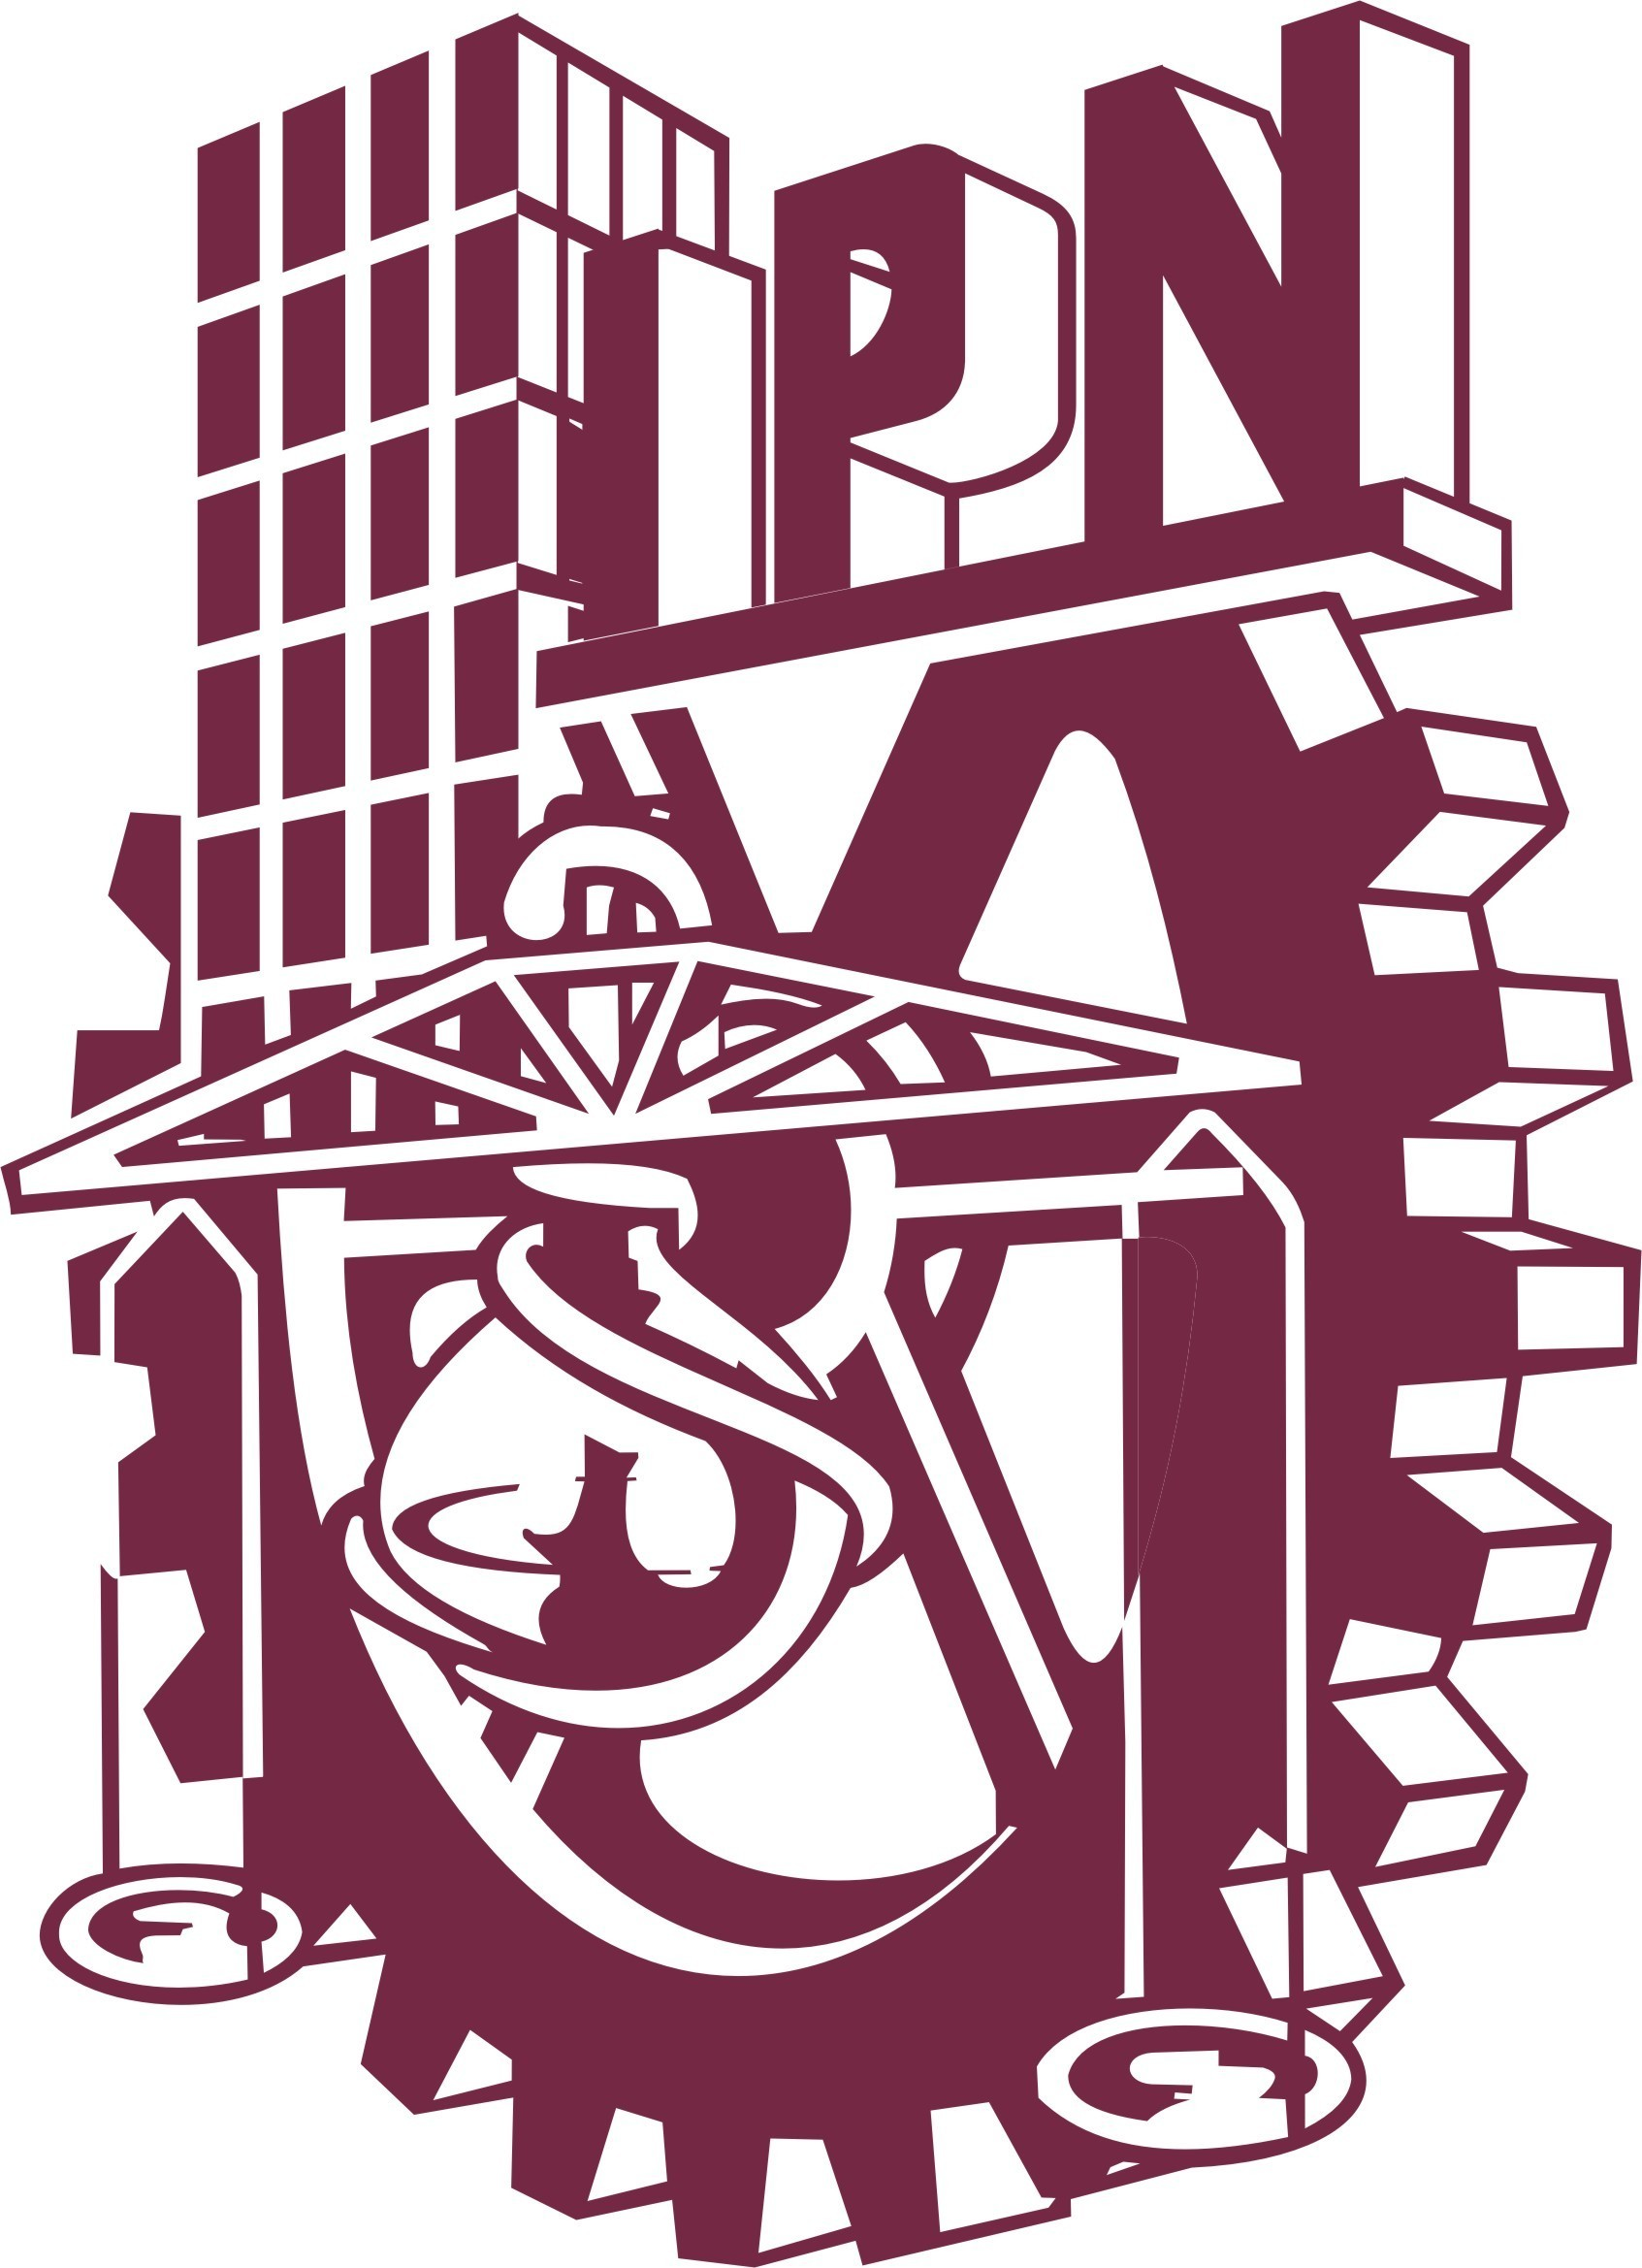 IPN universidad mexico